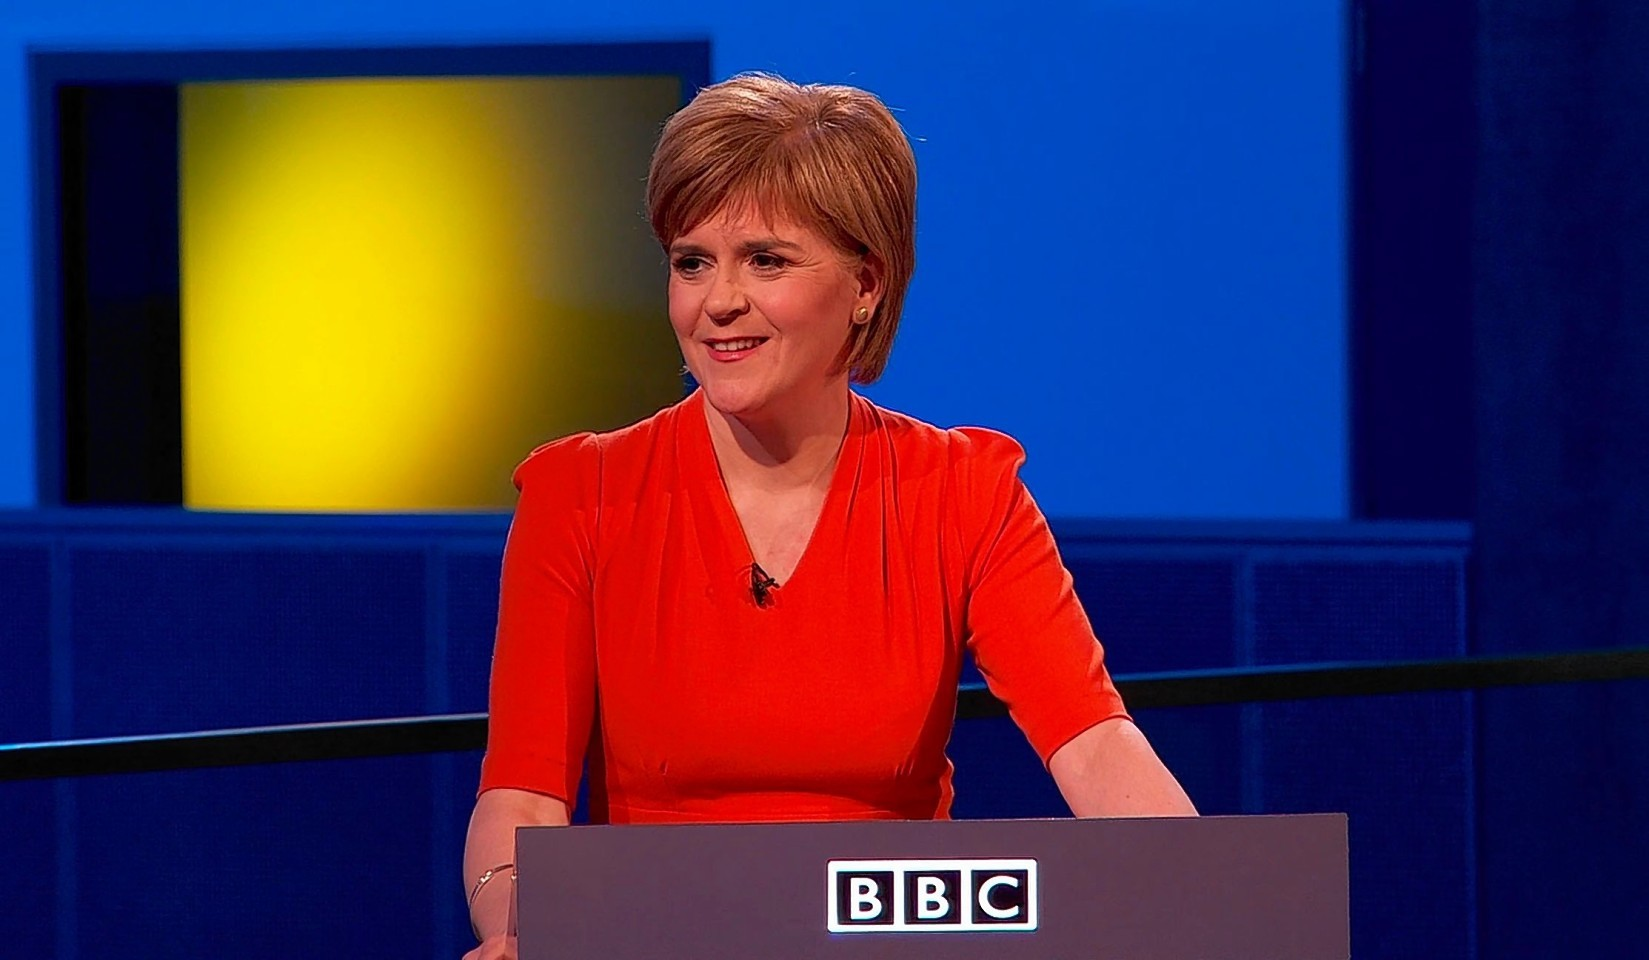 Nicola Sturgeon was quizzed this evening